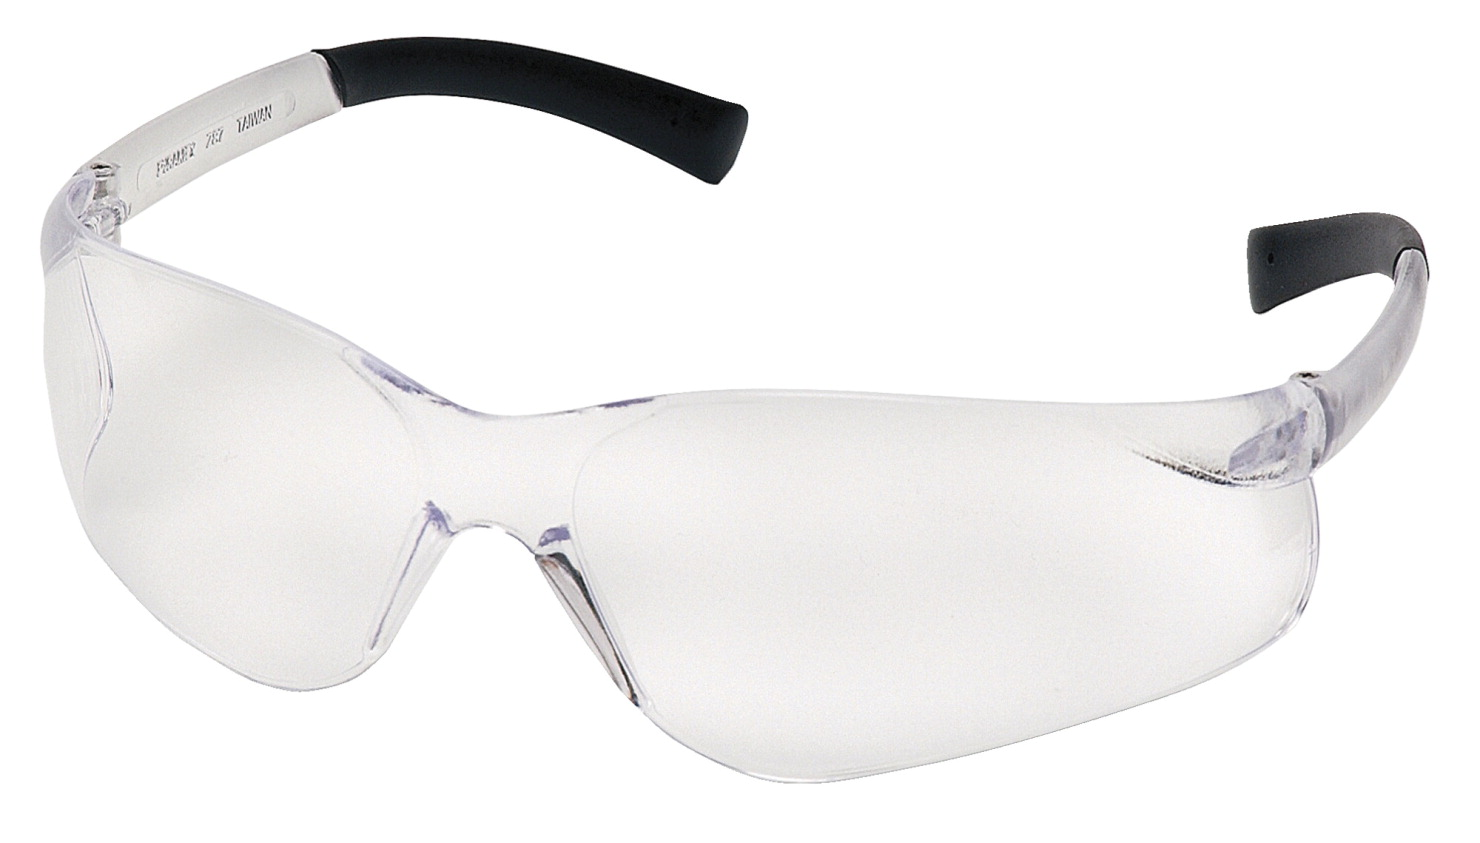 Frameless Safety Glasses : Impact Products Frameless Safety Eyewear, Clear - SCHOOL ...